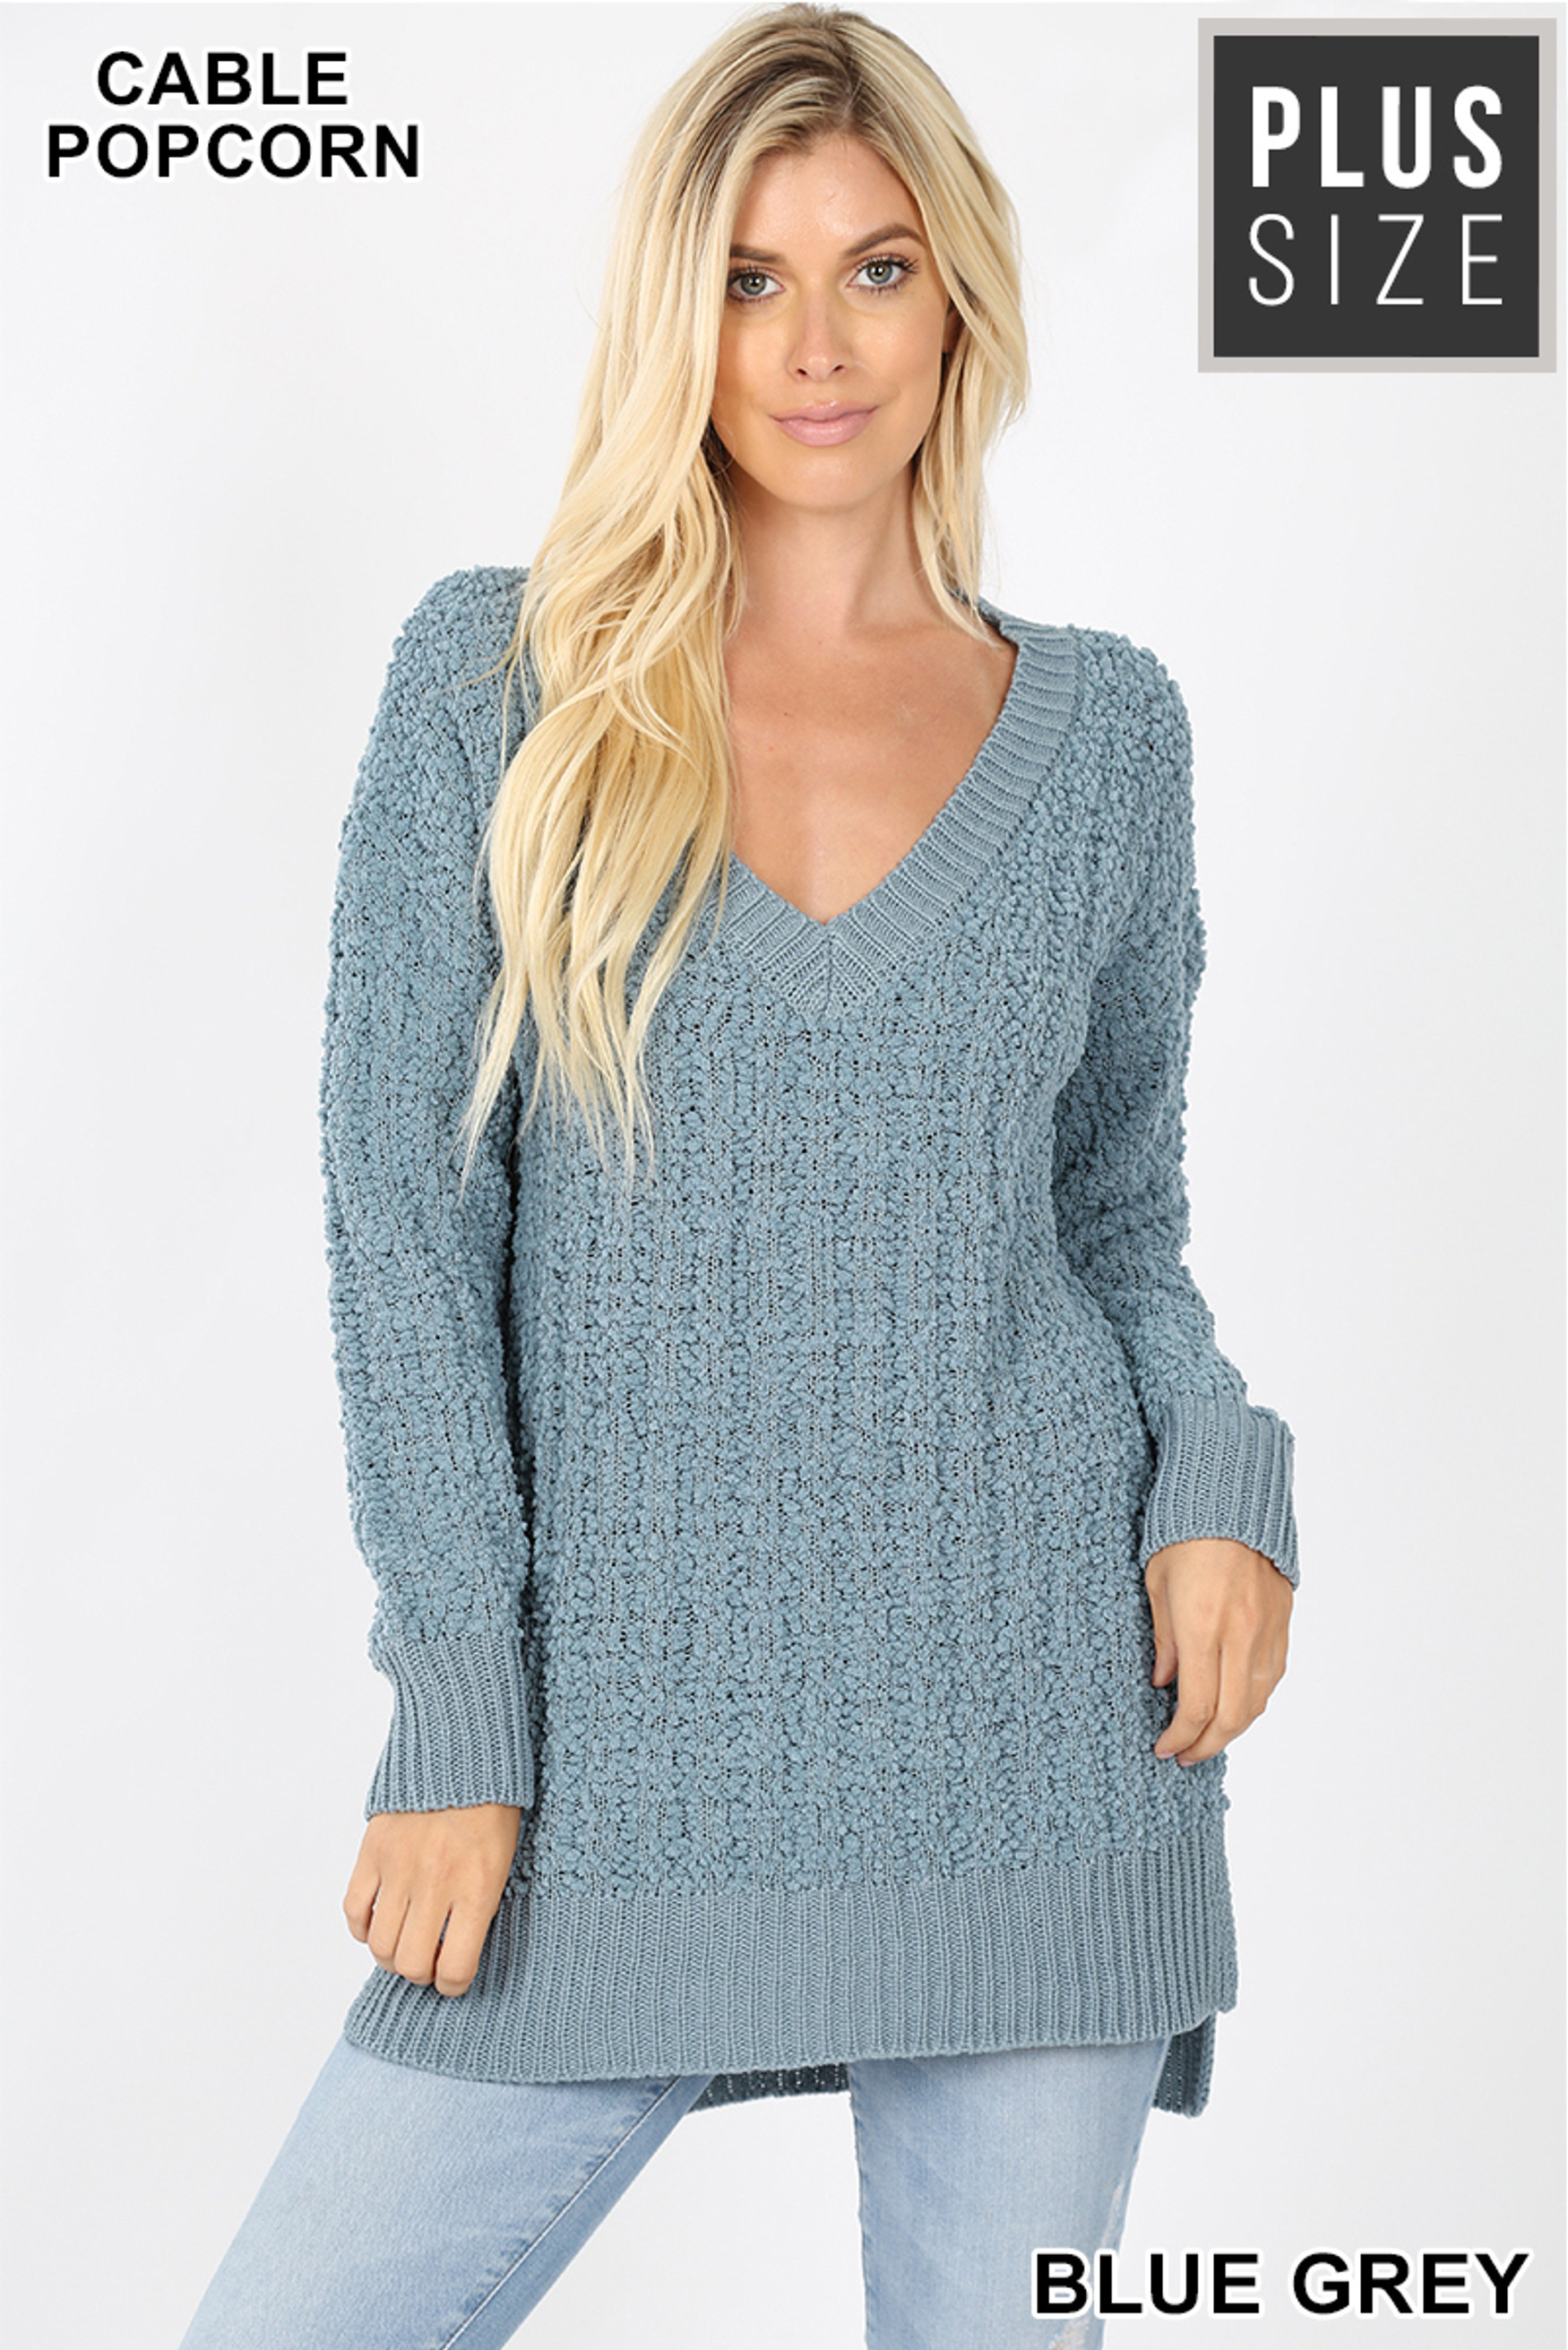 Front image of Blue Grey Cable Knit Popcorn V-Neck Hi-Low Plus Size Sweater